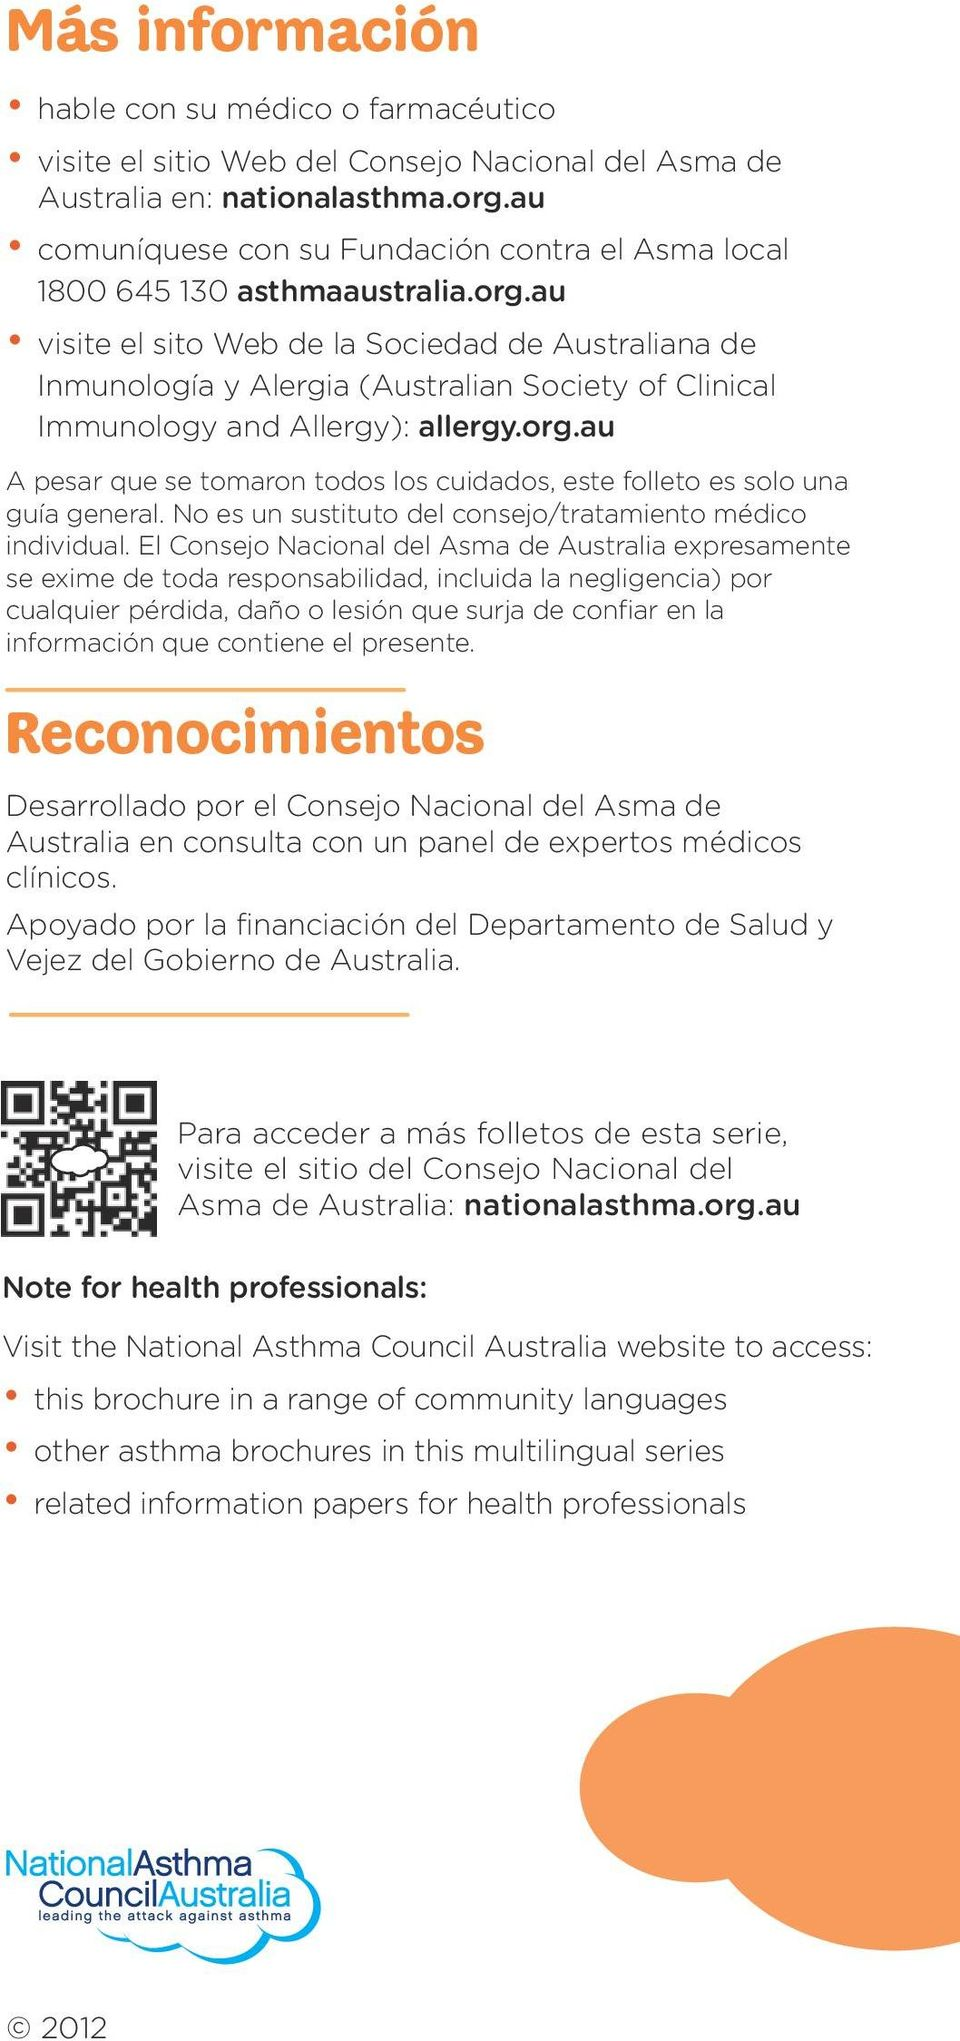 au visite el sito Web de la Sociedad de Australiana de Inmunología y Alergia (Australian Society of Clinical Immunology and Allergy): allergy.org.